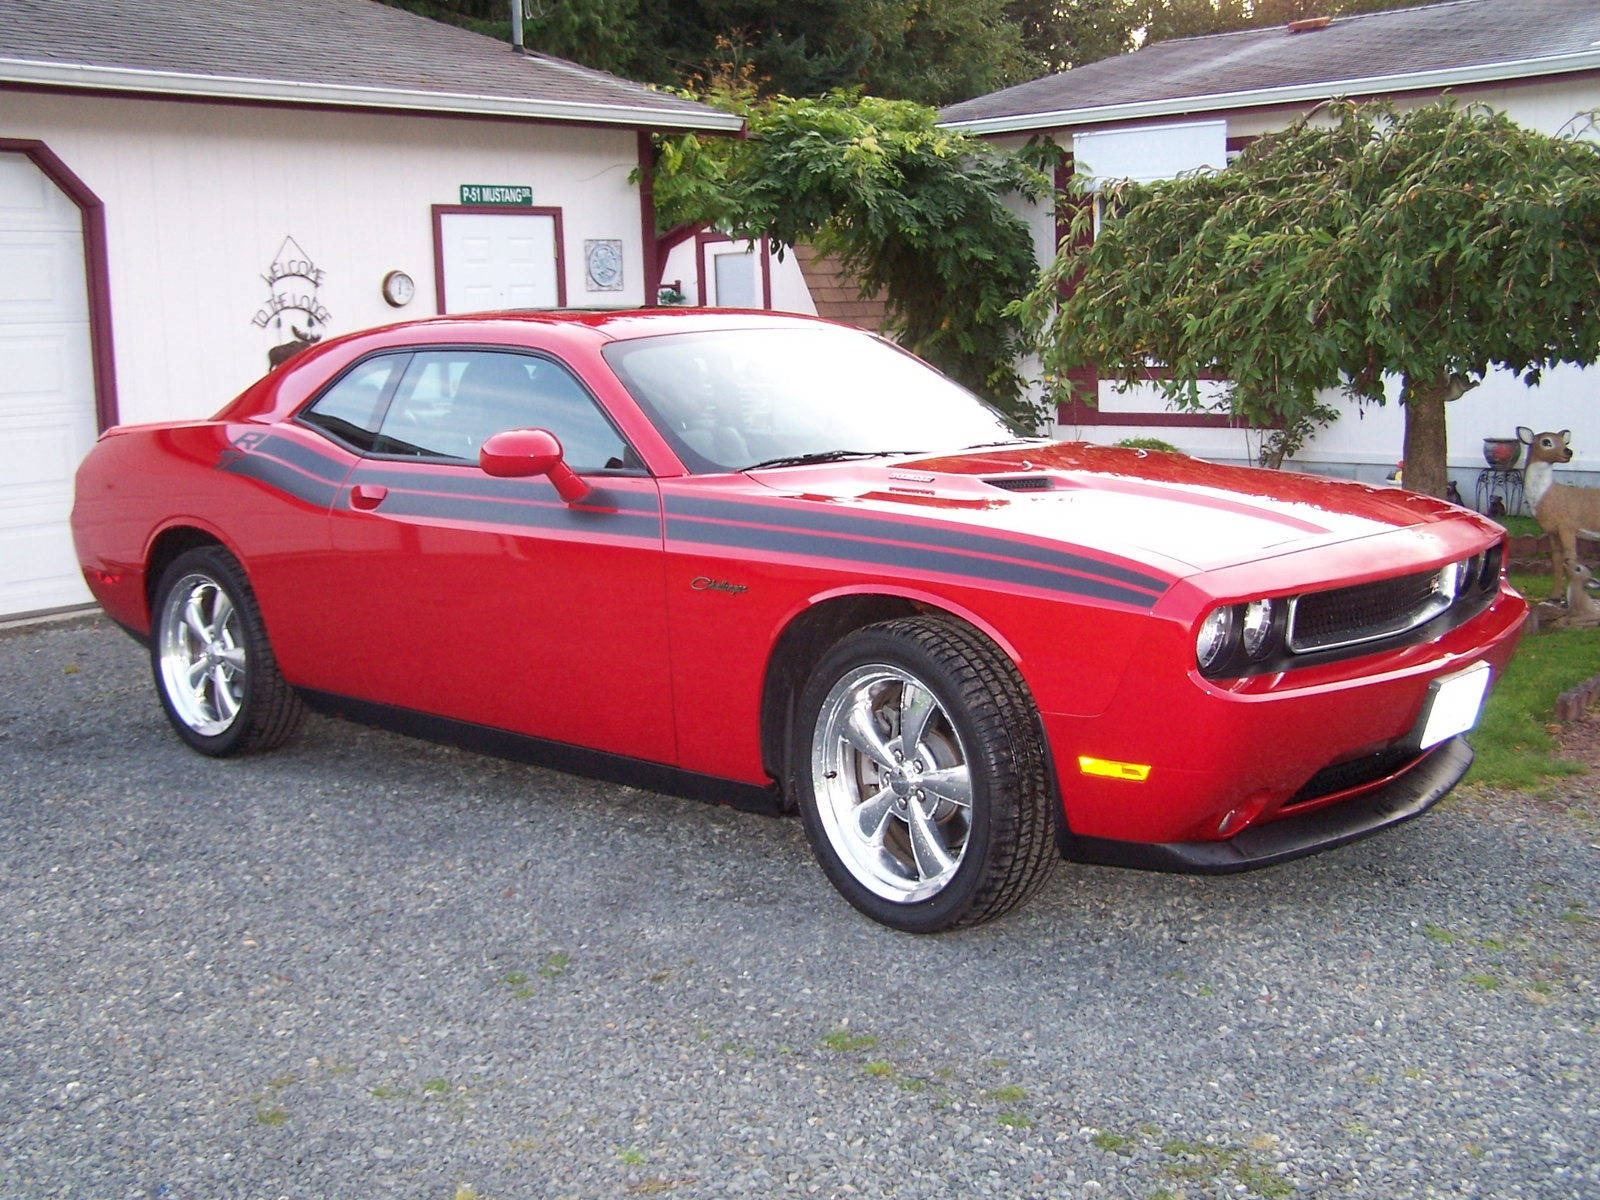 2010 dodge challenger - photo #16